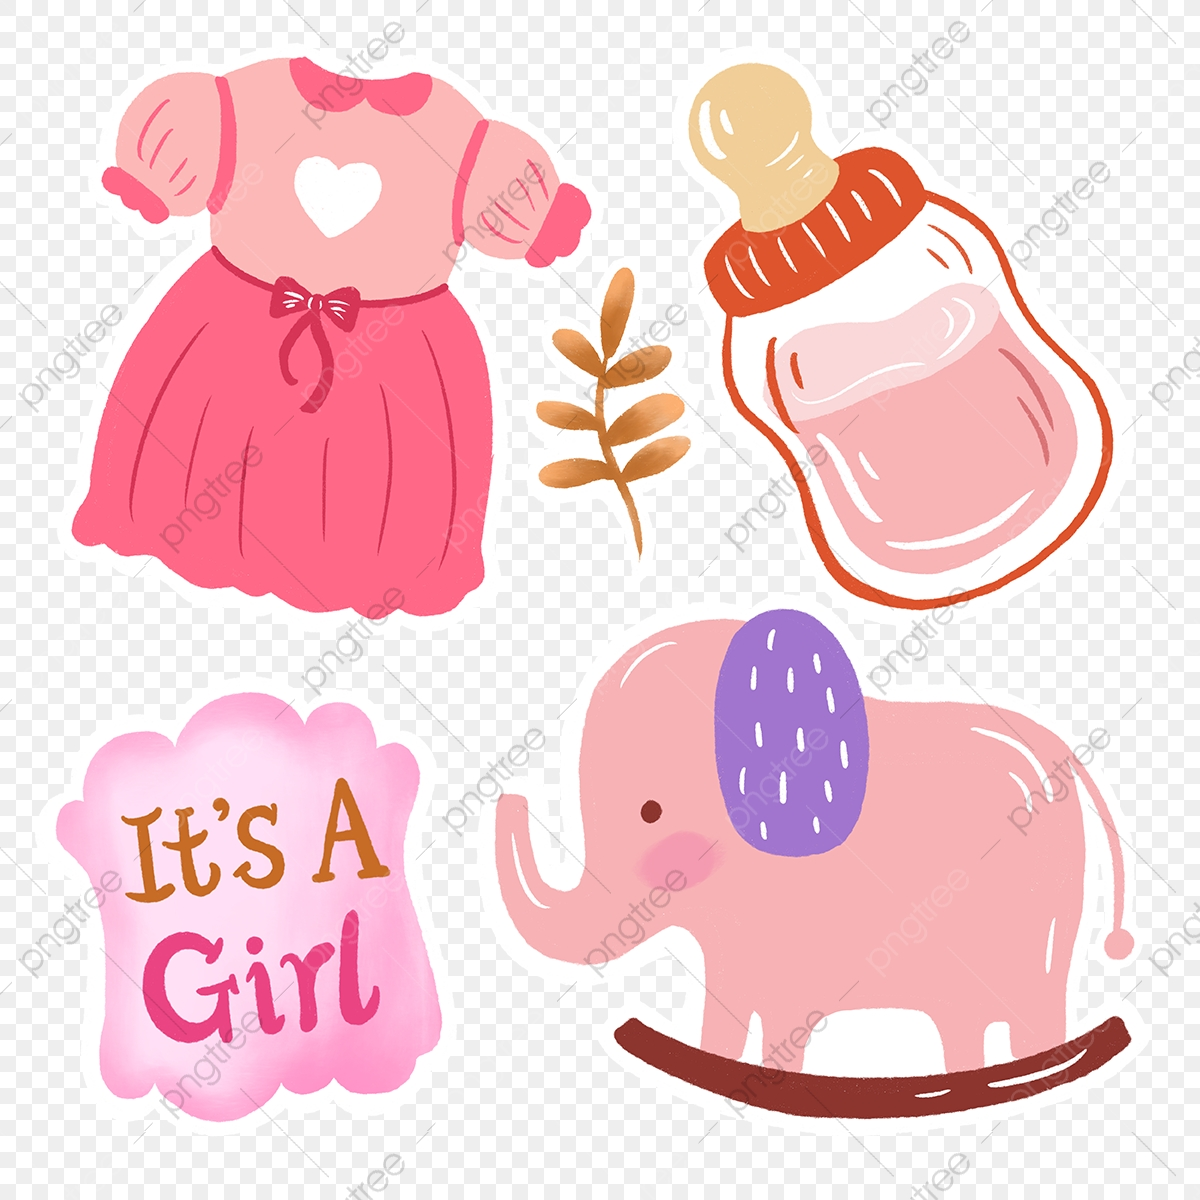 Pink Cute Baby Stickers Baby Sticker Dress Png Transparent Clipart Image And Psd File For Free Download